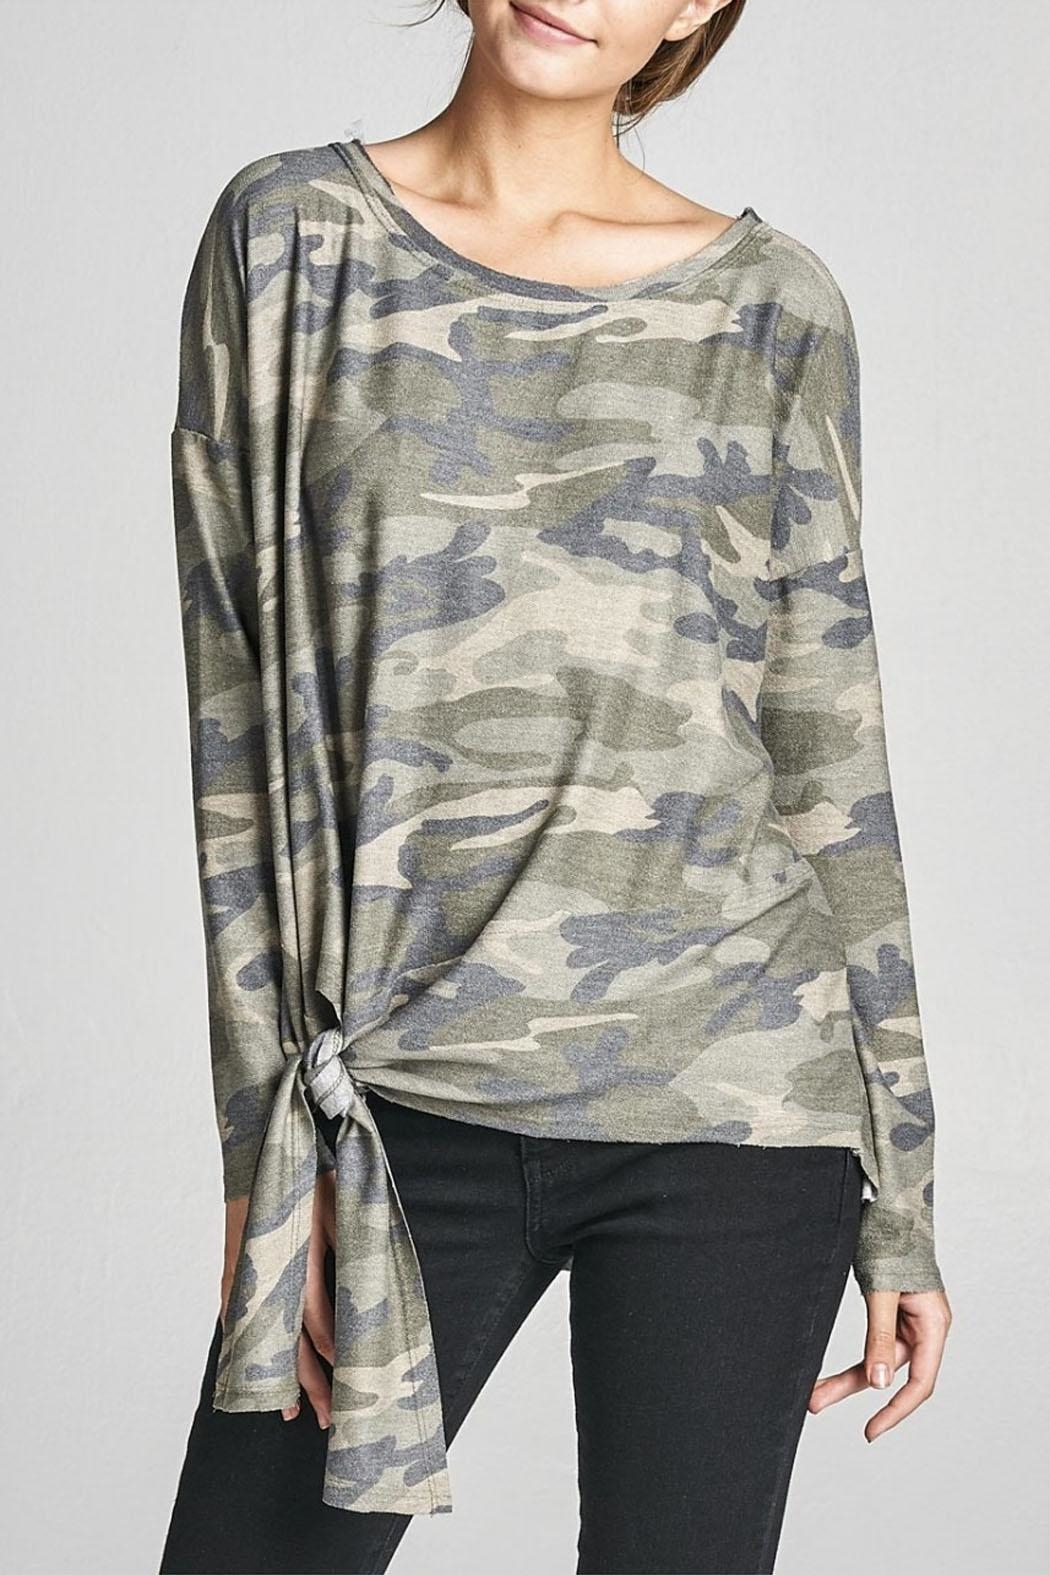 Cotton Bleu Camo Crew Neck Top - Back Cropped Image